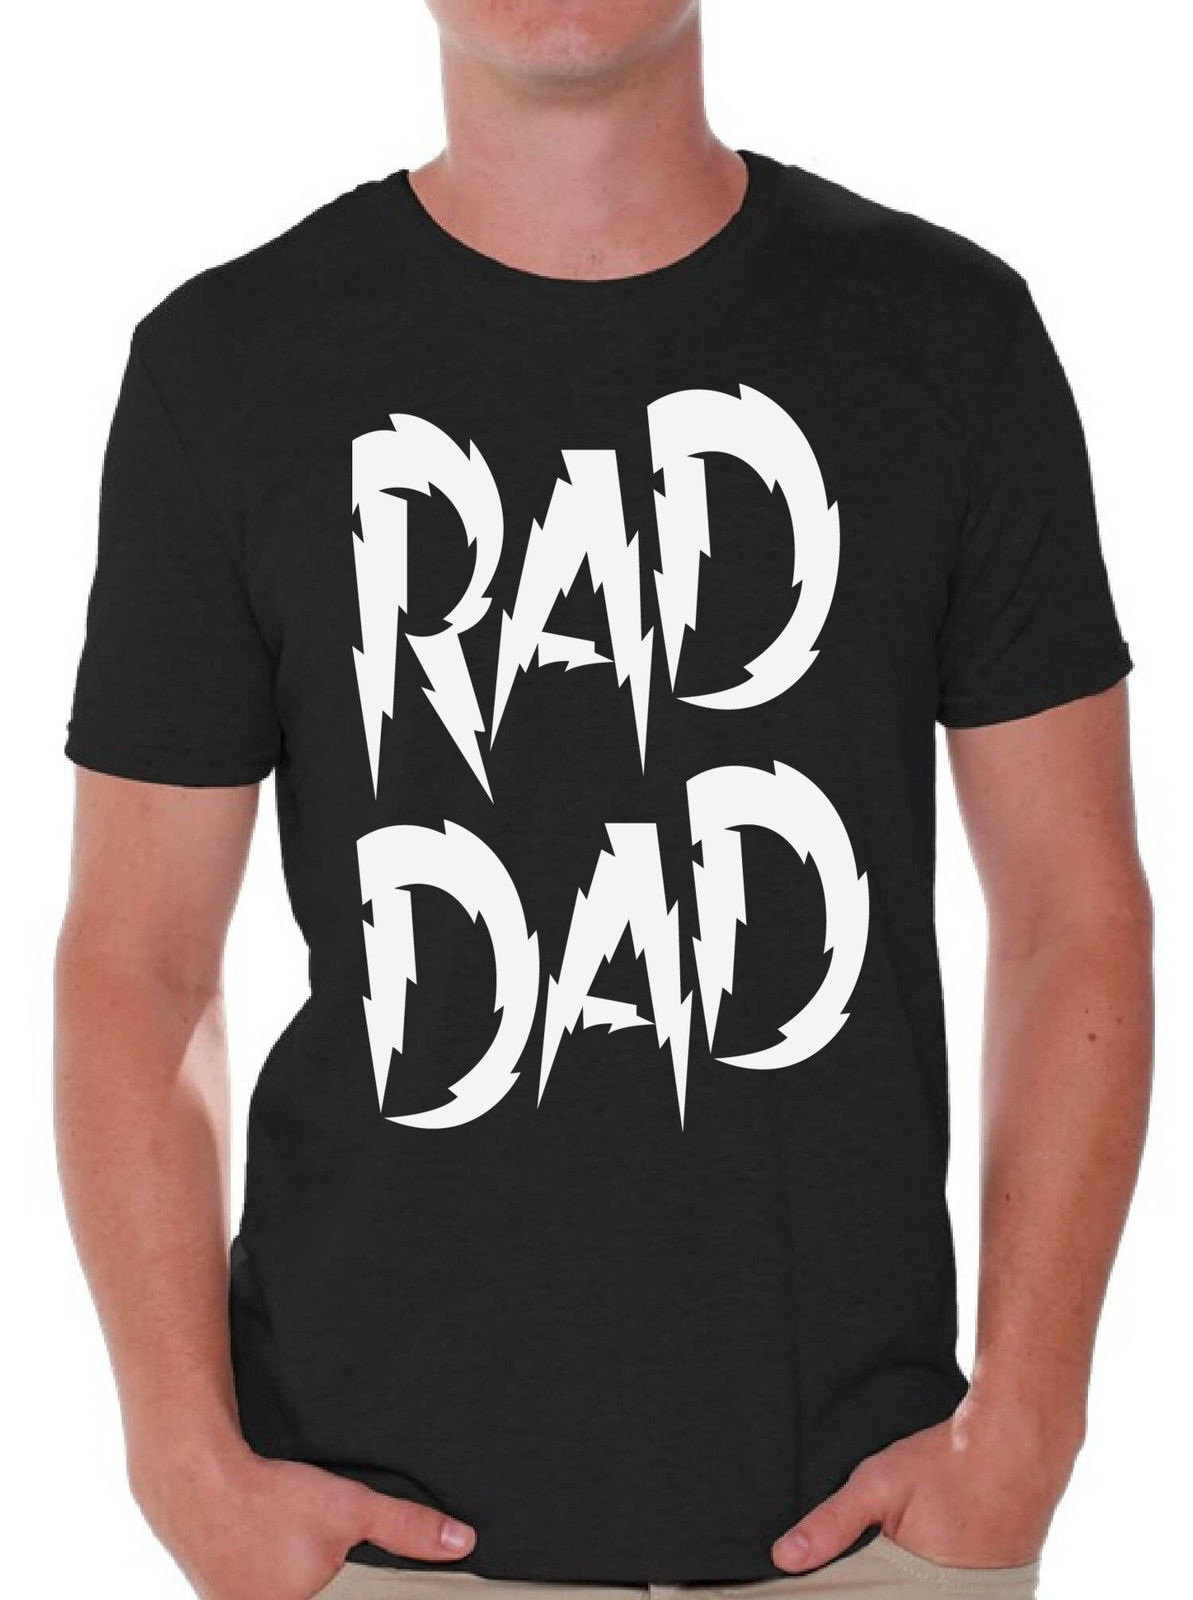 Fashion Men Tshirt Rad Dad Fathers Day T Shirt Tops Gift for Dad Coolest Dad Best Dad Ever O Neck T-shirt